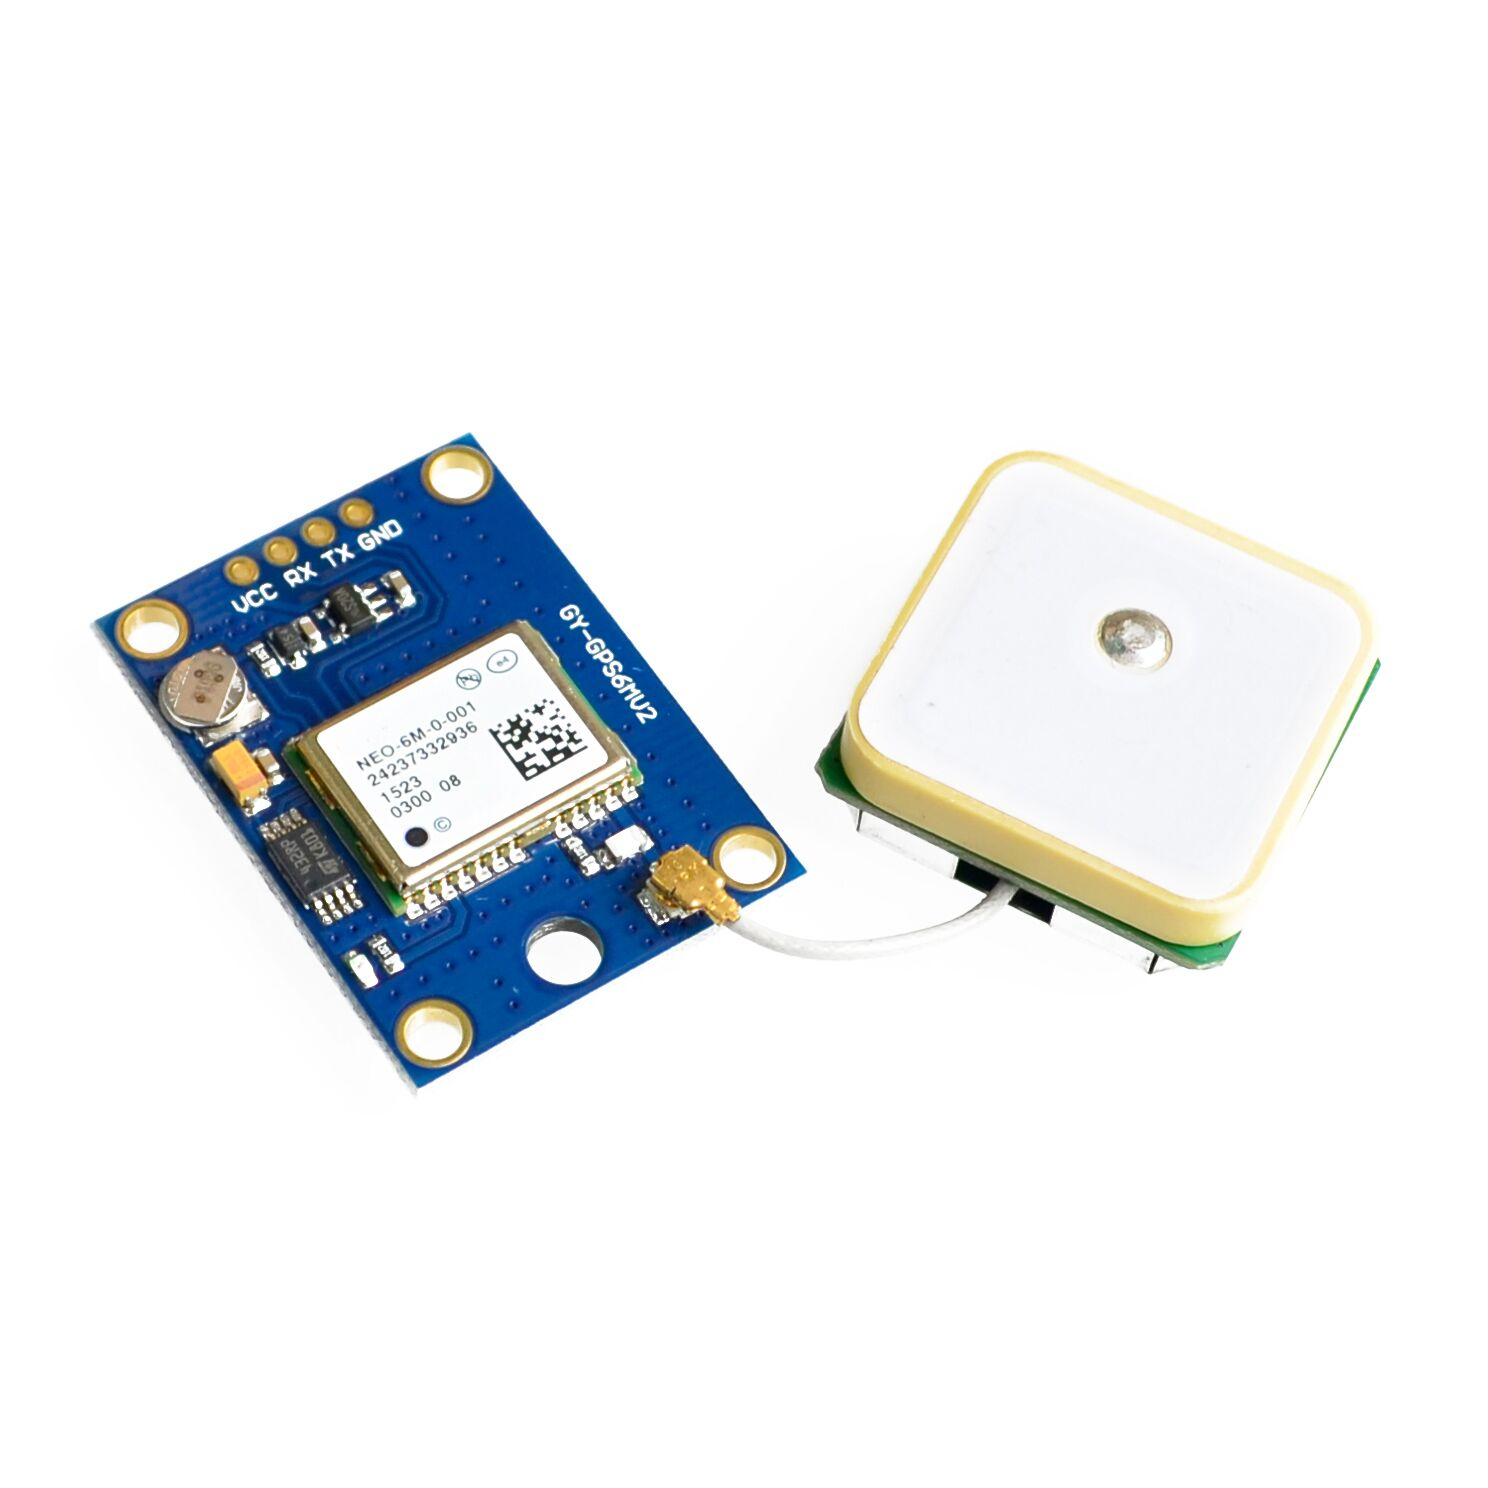 ! GY-NEO6MV2 New NEO-6M GPS Module NEO6MV2 With Flight Control EEPROM MWC APM2.5 Large Antenna For